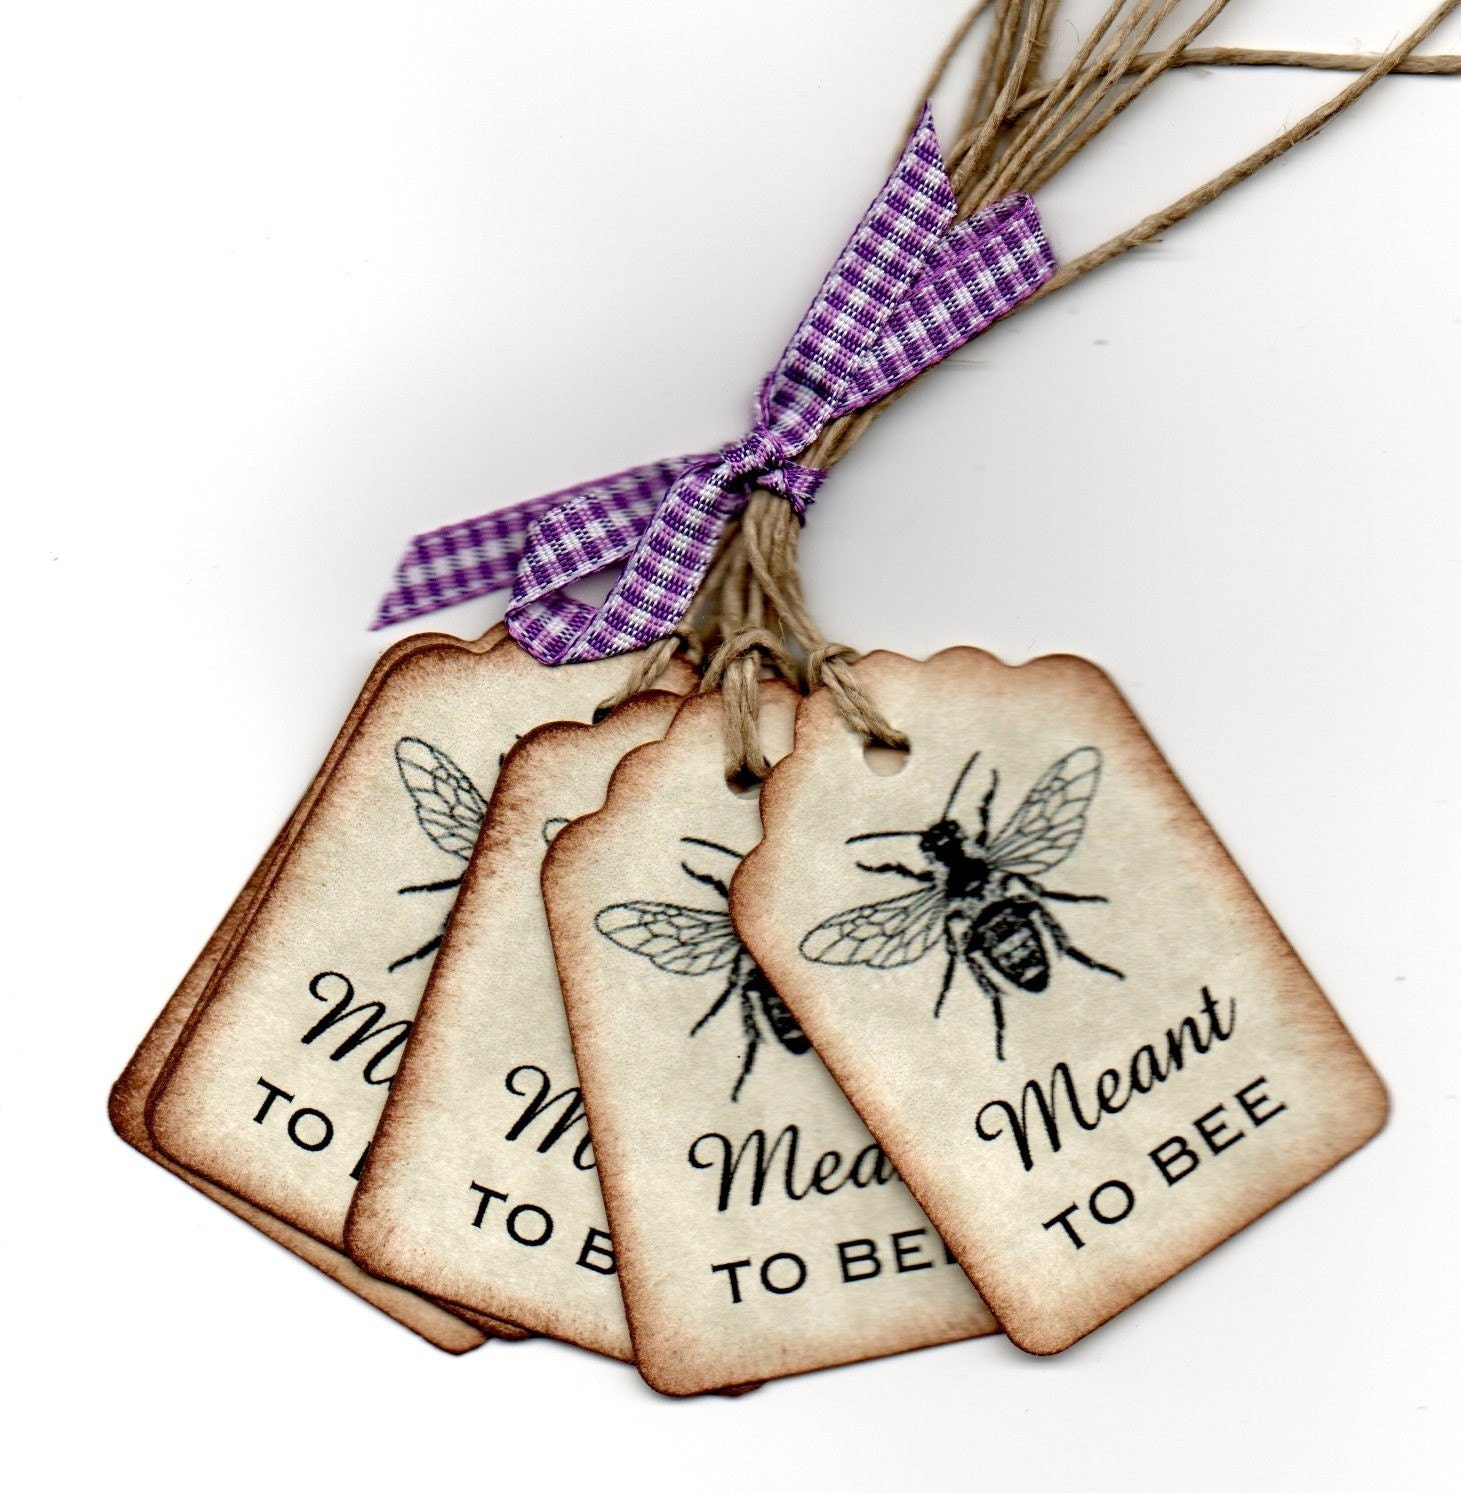 Wedding Favor Tags Wedding Wish Tags Meant To Bee by luvs2create2